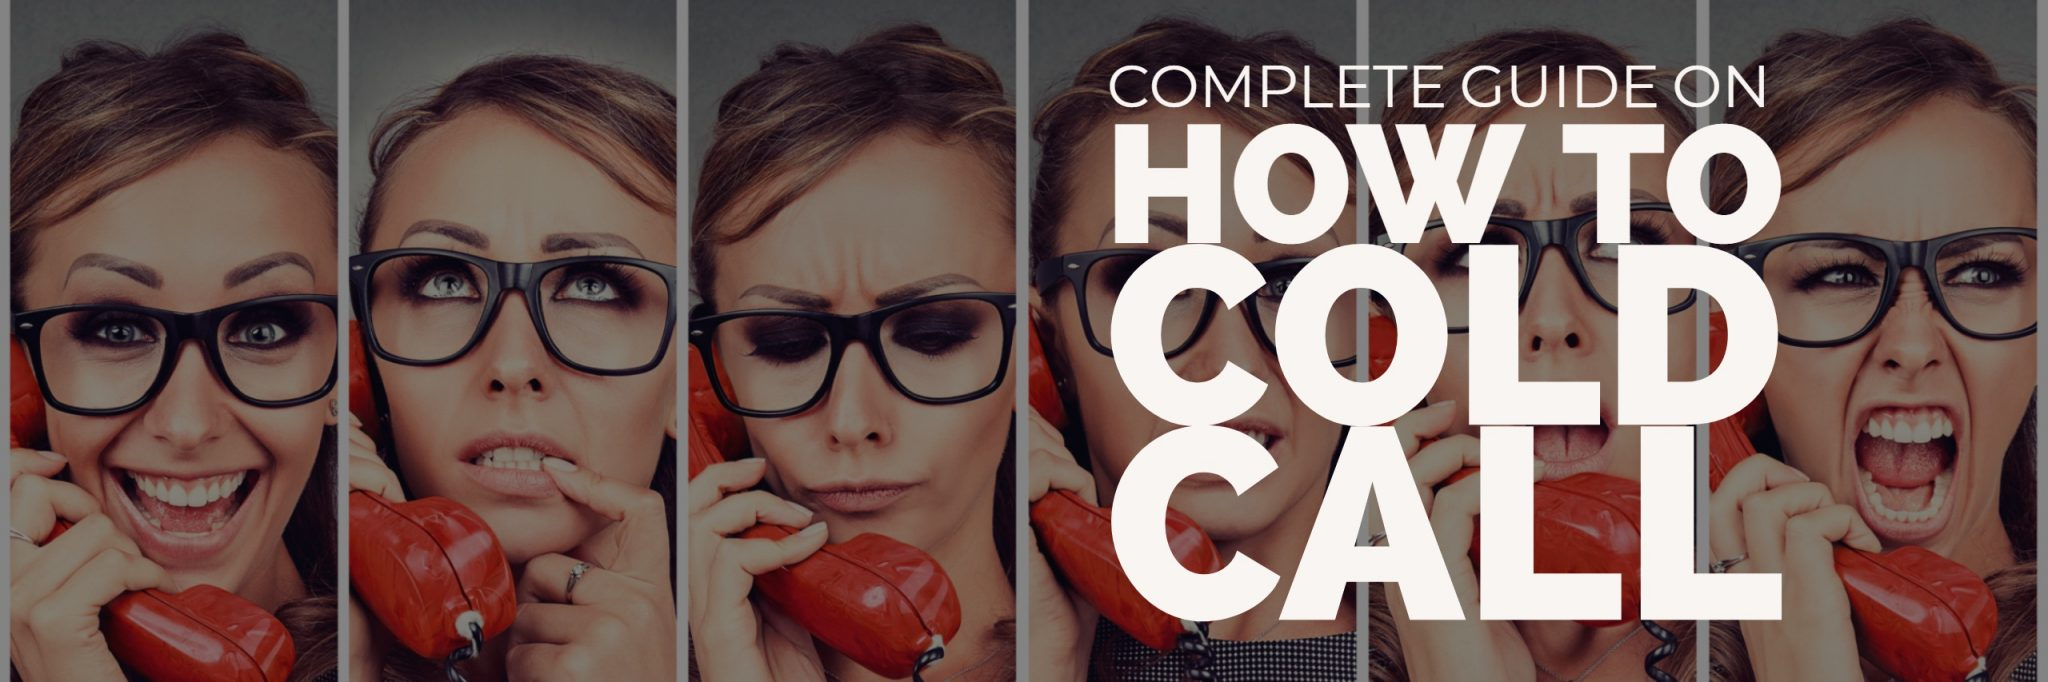 The Complete Guide on How to cold call in real estate best real estate company to work for real estate agent training real estate agent coaching best real estat company for new agents